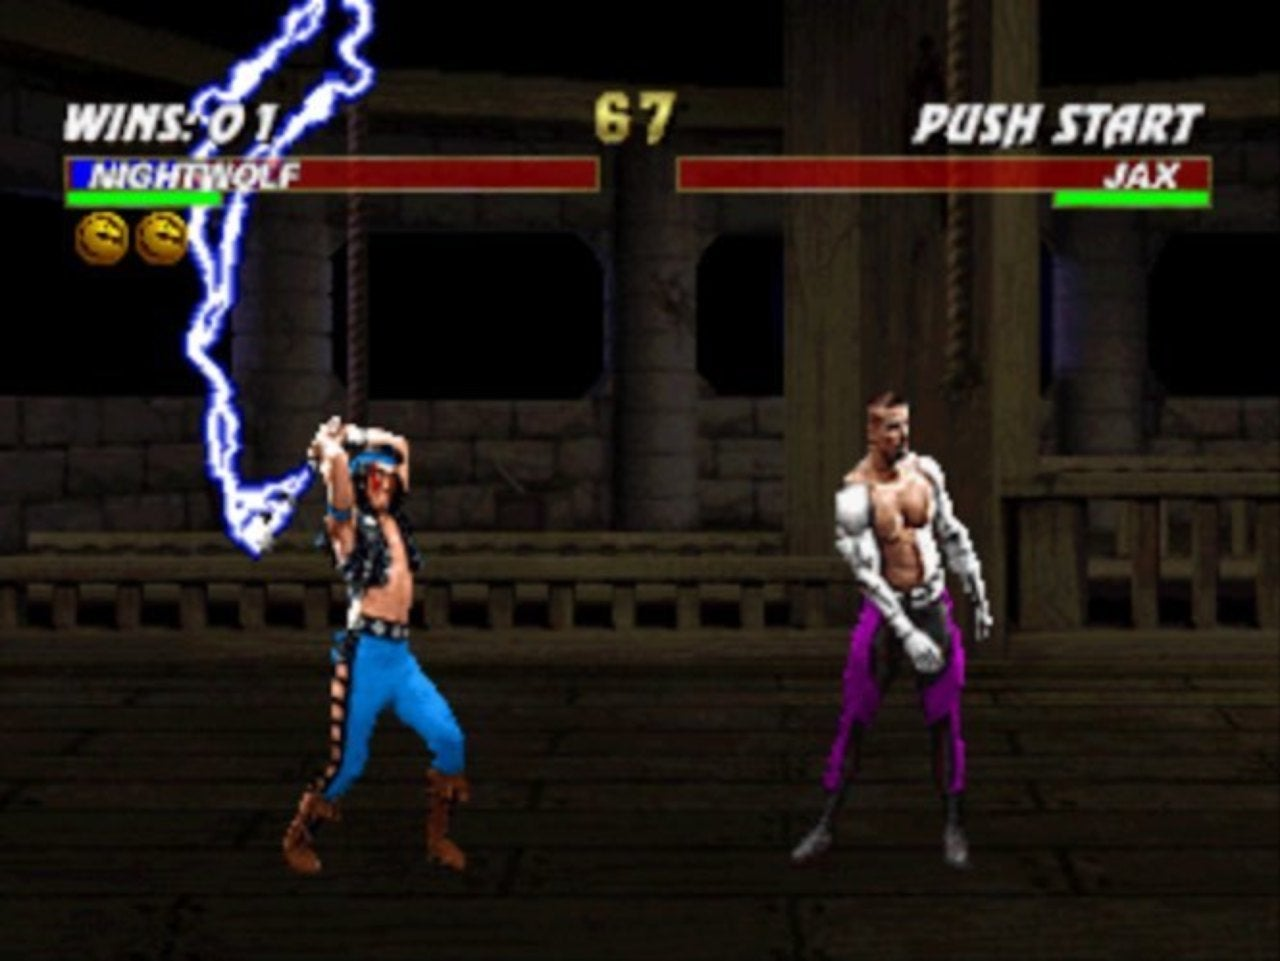 Ed Boon Shares Classic Behind-the-Scenes 'Mortal Kombat 3' Video